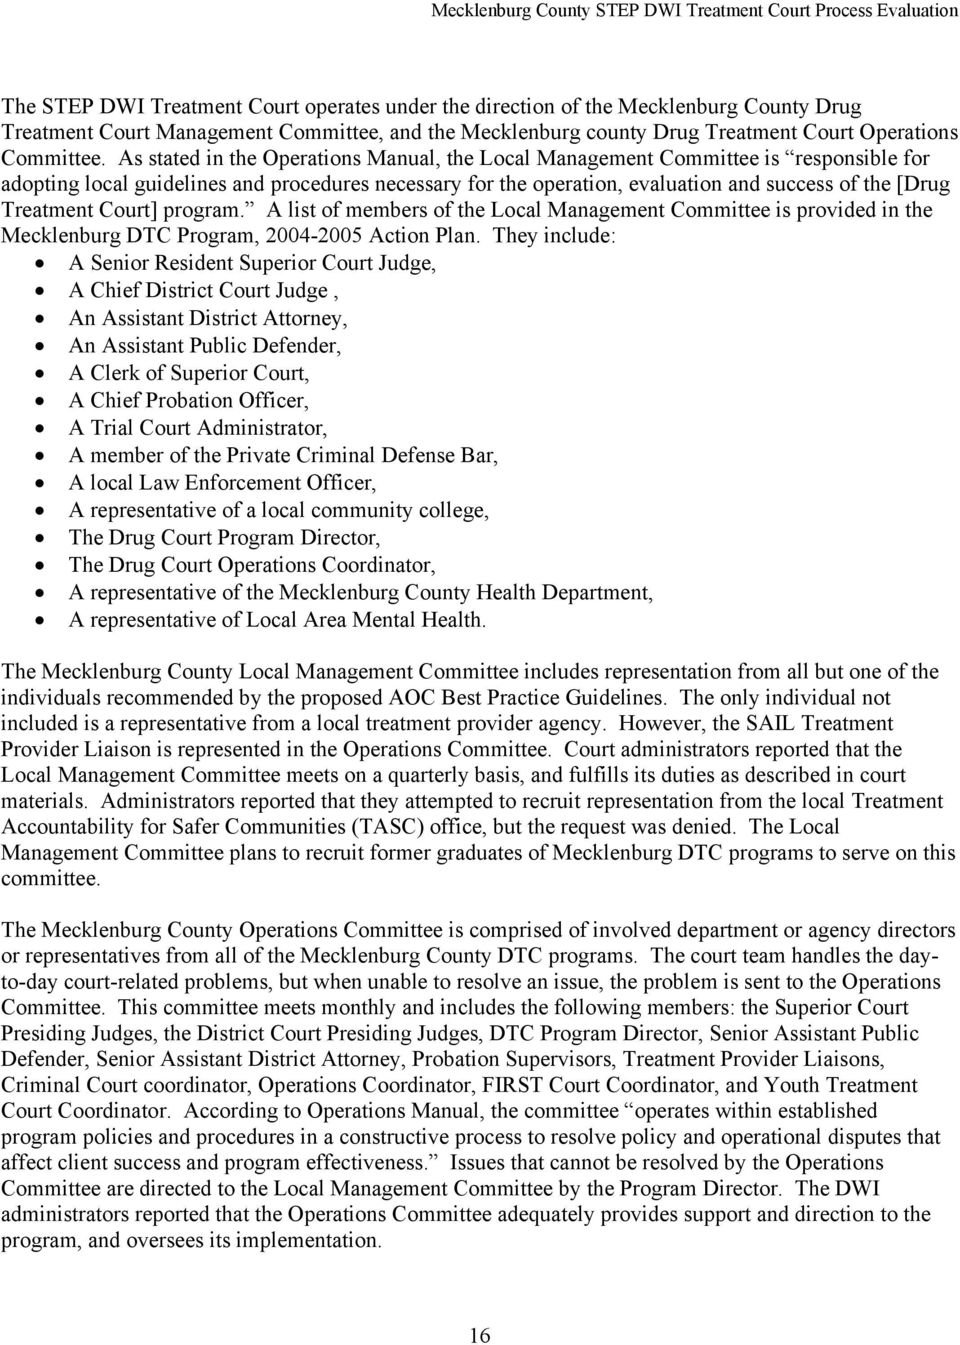 Treatment Court] program. A list of members of the Local Management Committee is provided in the Mecklenburg DTC Program, 2004-2005 Action Plan.